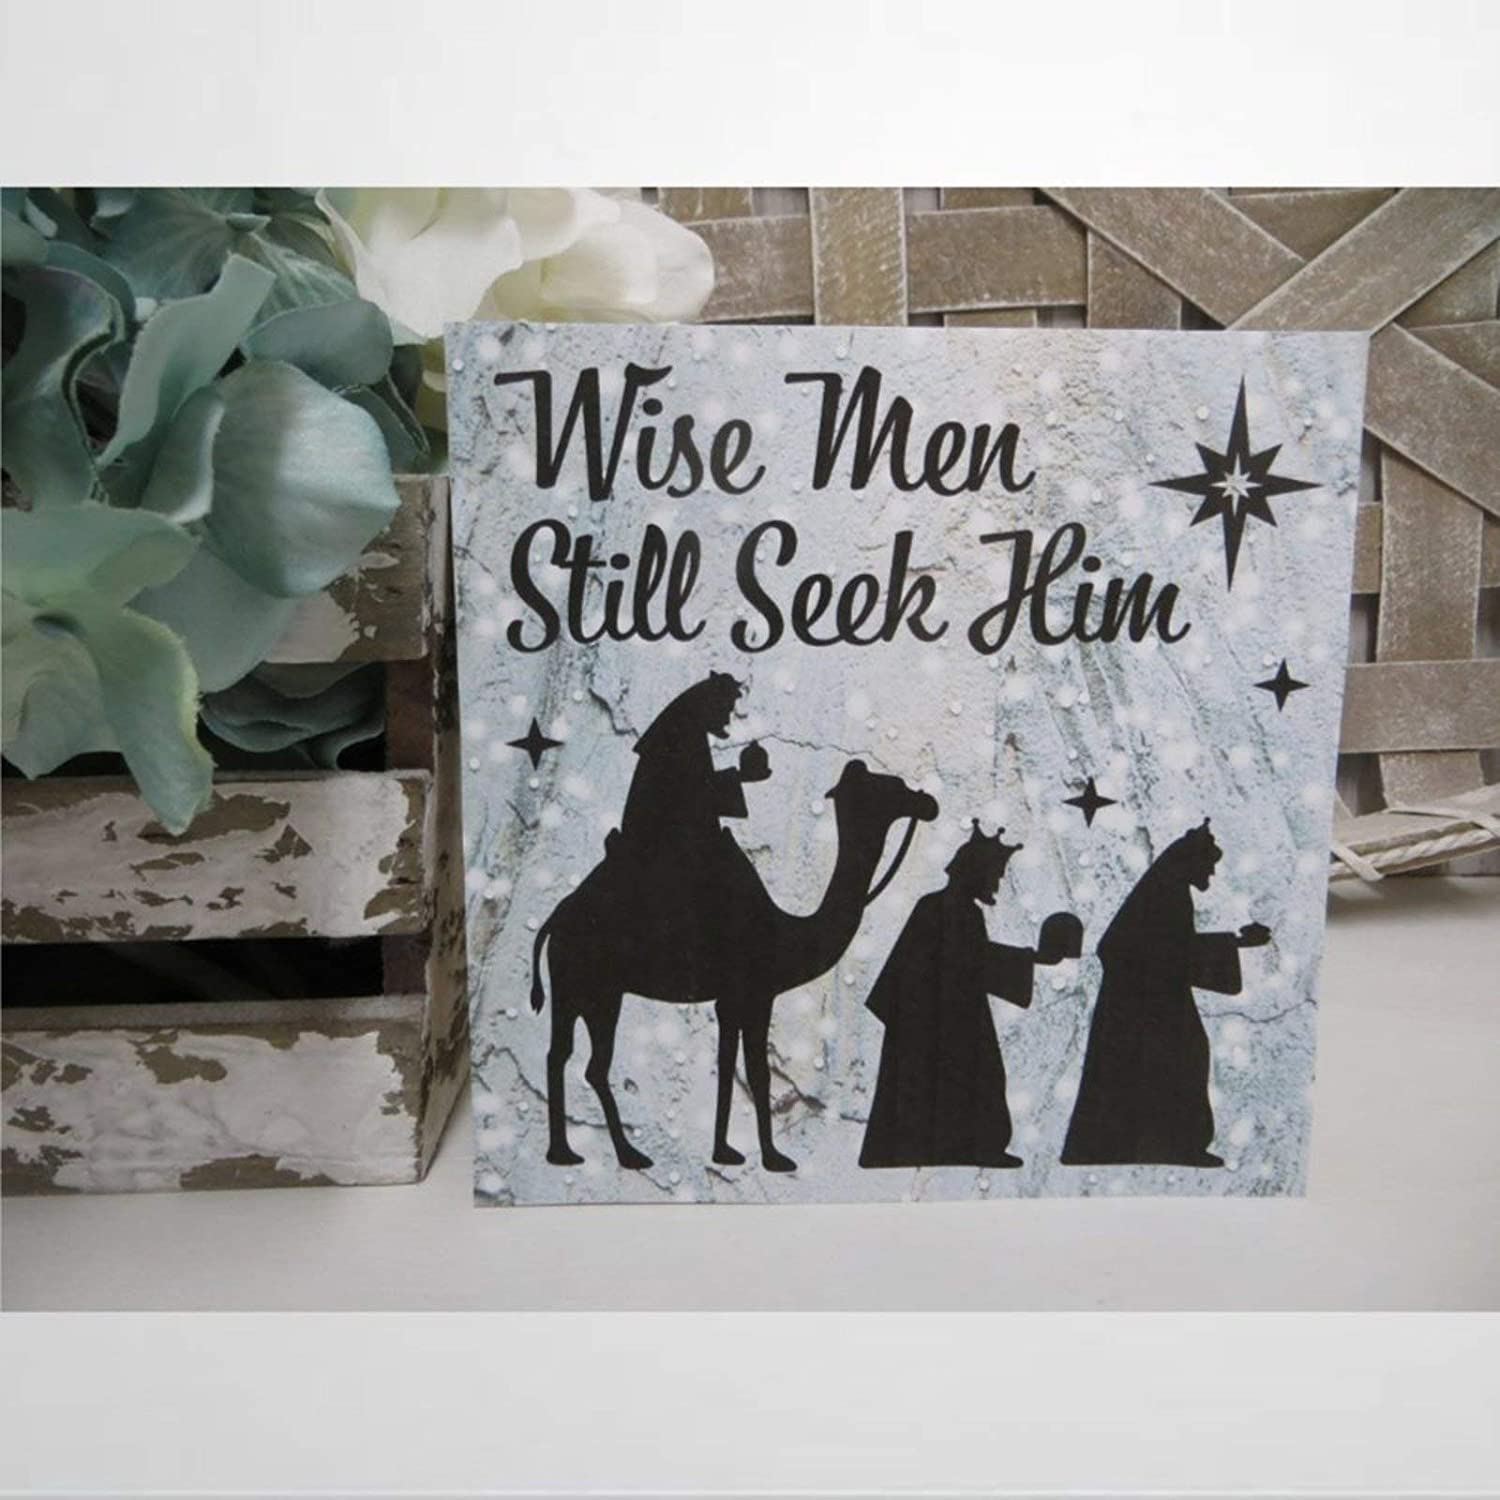 DONL9BAUER Rustic Wood Sign, Christmas Sign, Wise Men Still Seek Him, Religious Sign, Christmas Office Decor, Hanging Wall Art Home Decor